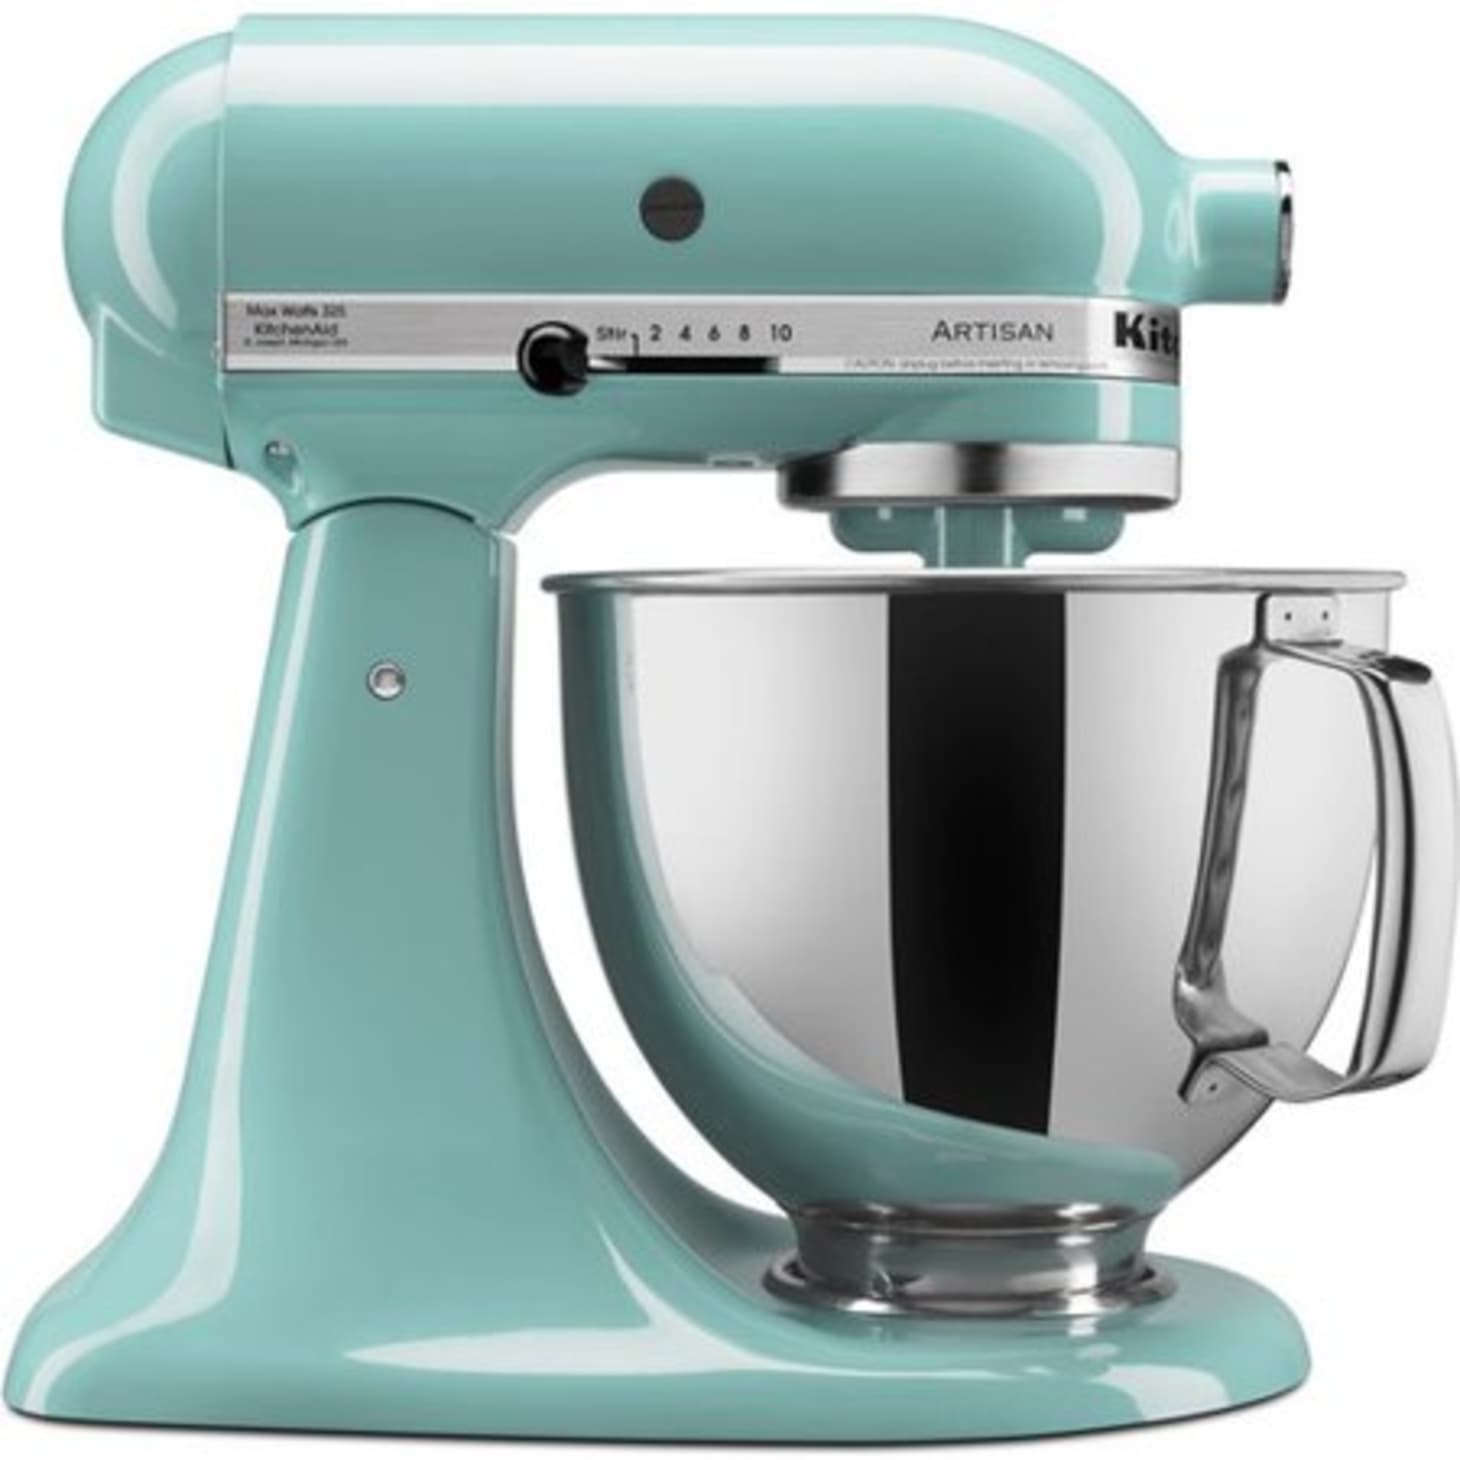 Best KitchenAid Stand Mixer Sales - 4th of July | Kitchn